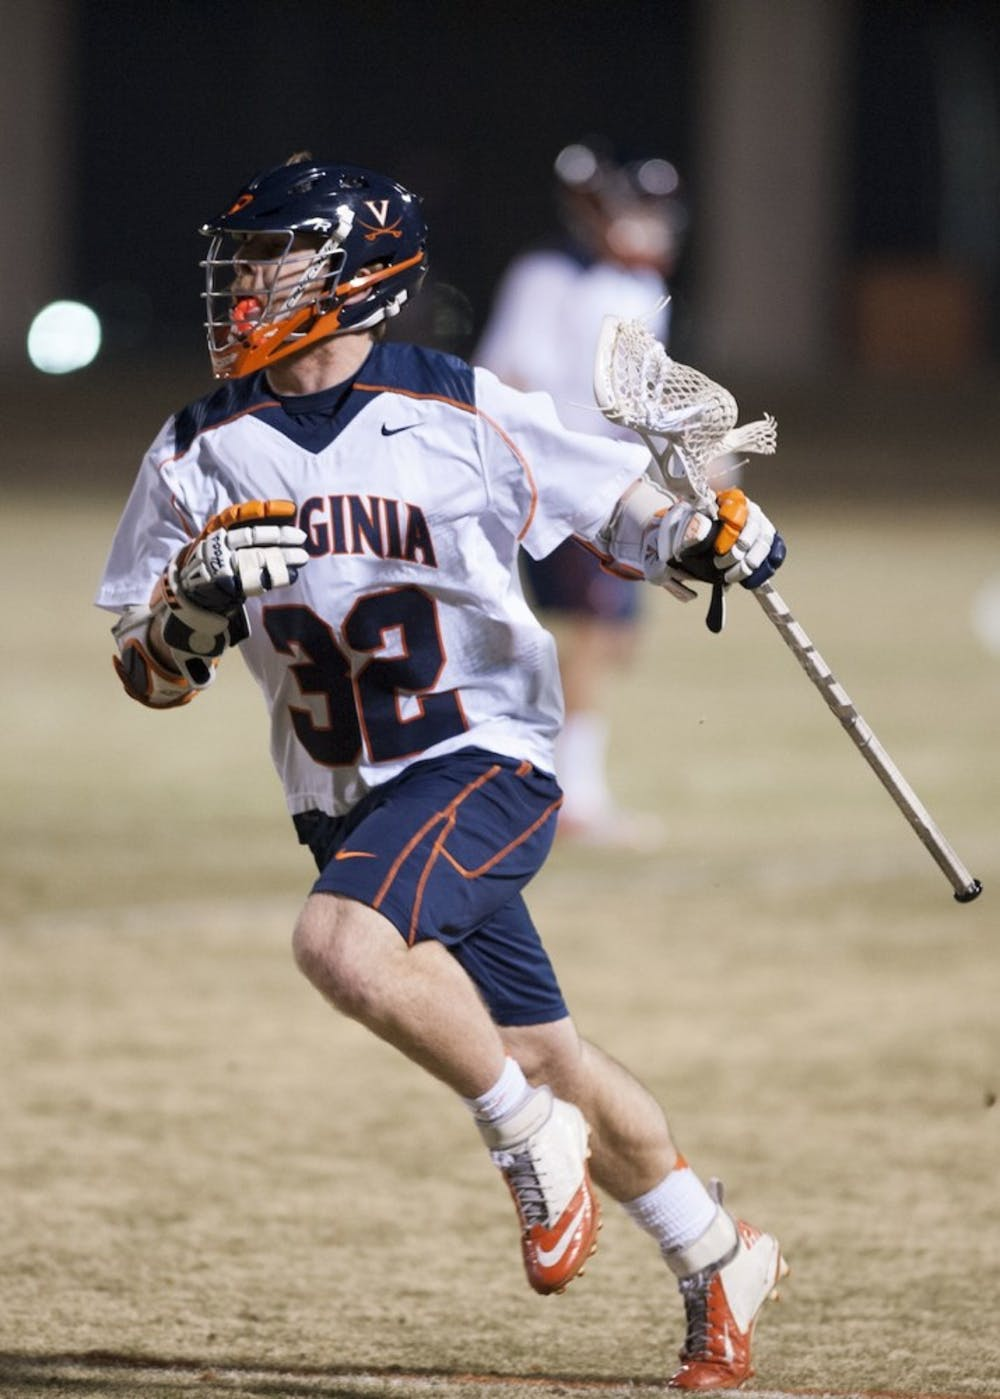 <p>Sophomore attackman James Pannell scored a career-high seven goals Saturday to lead the No. 4 Cavaliers to a 17-12 win against No. 8 Syracuse.</p>